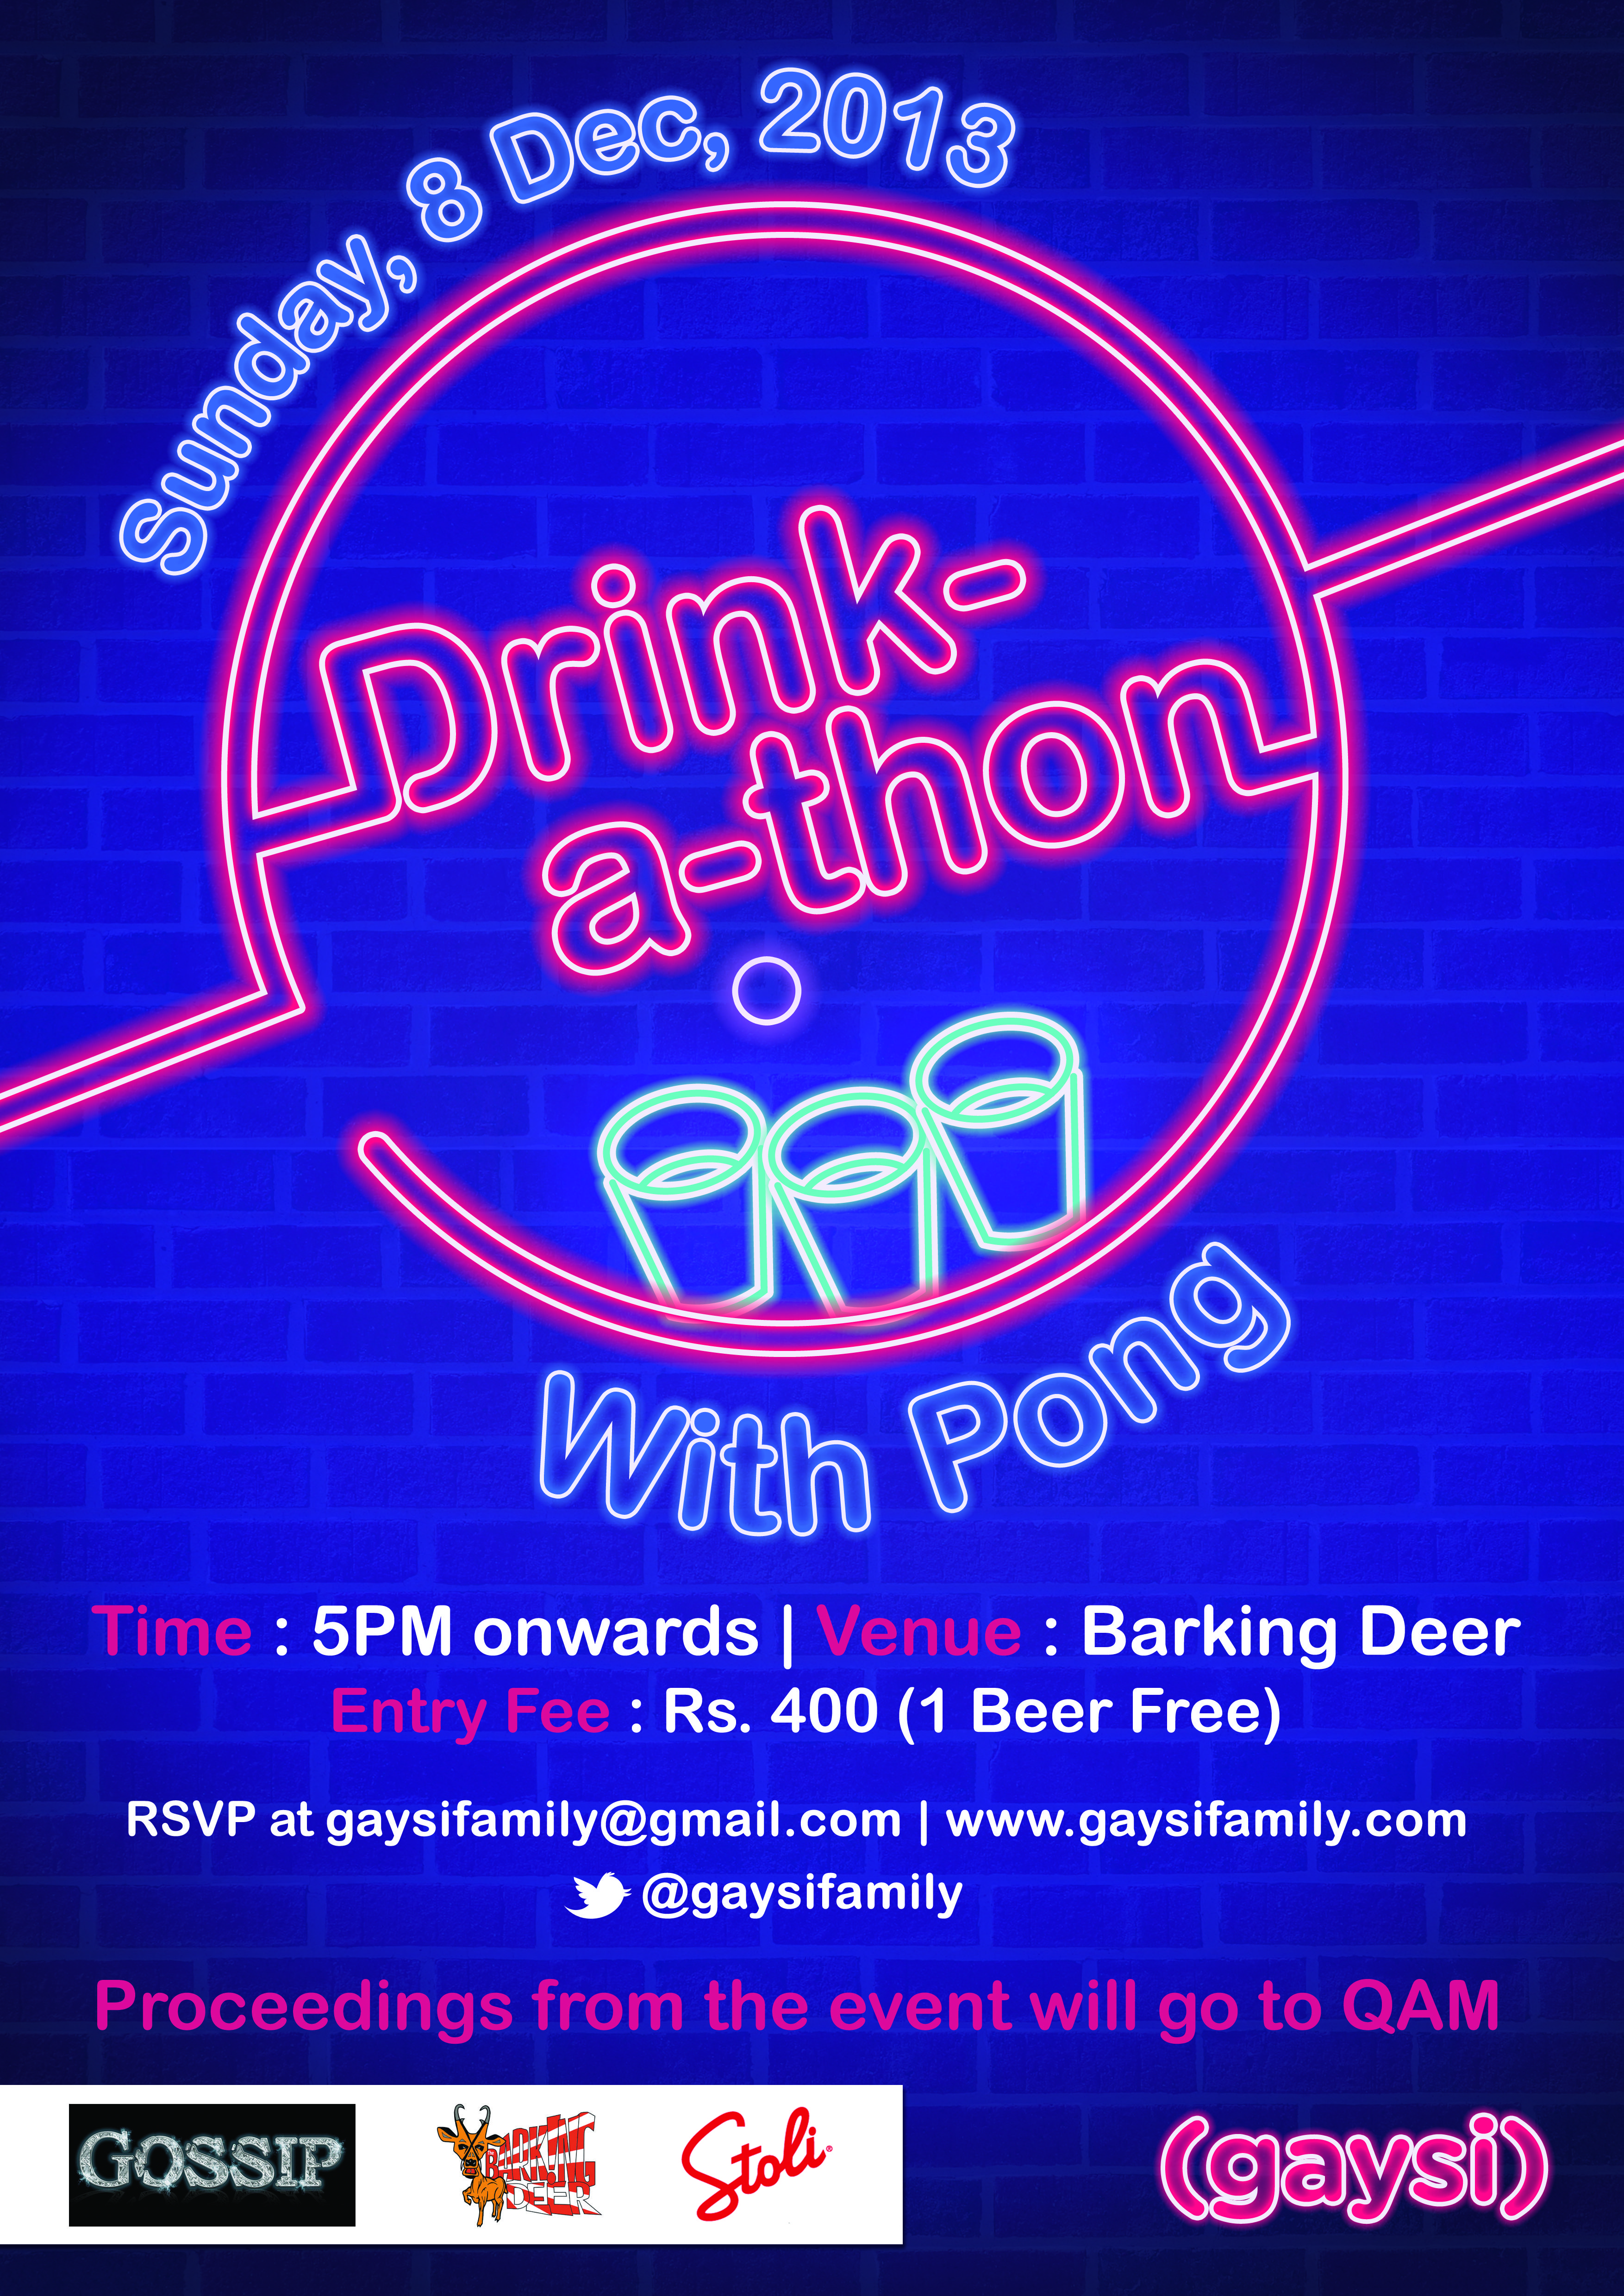 Drink-A-Thon : Fundraiser for Mumbai Pride 2014